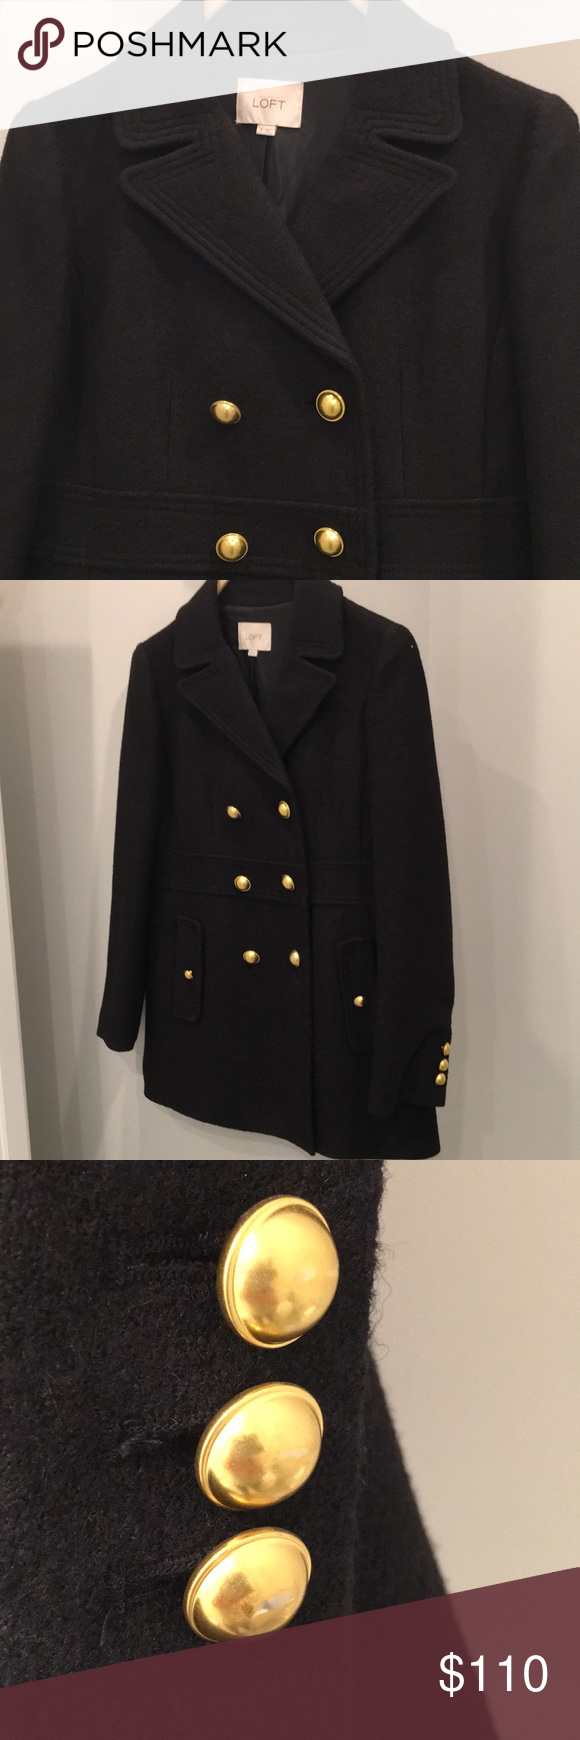 LOFT PEA COAT GREAT CONDITION, lovely gold buttons